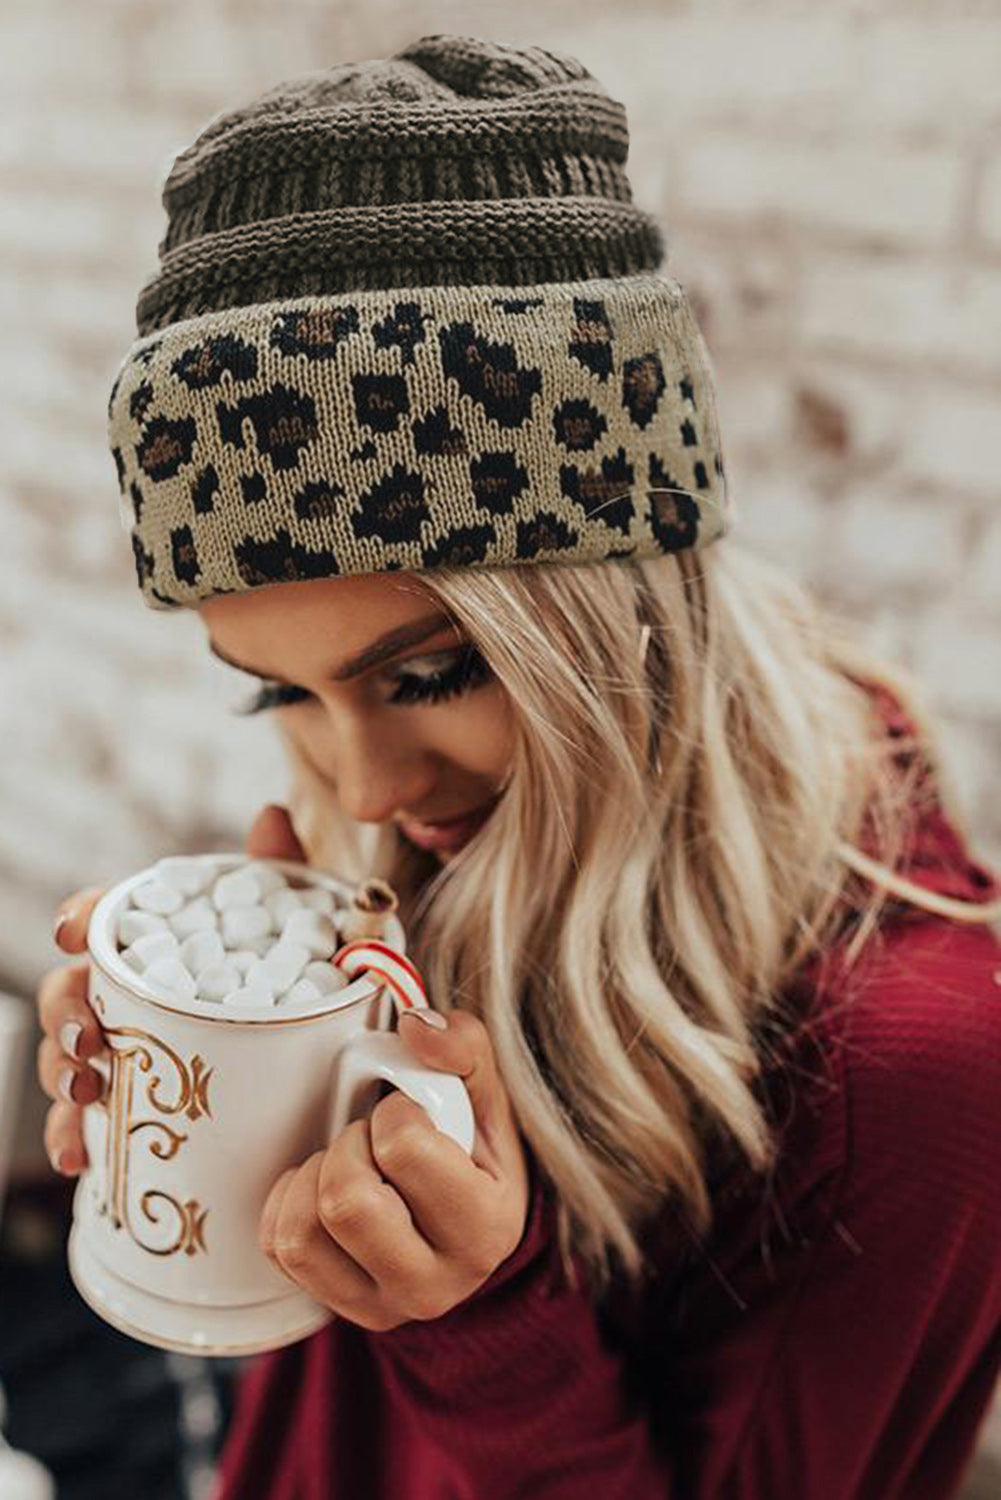 Gray Knitted Leopard Beanie Others Discount Designer Fashion Clothes Shoes Bags Women Men Kids Children Black Owned Business